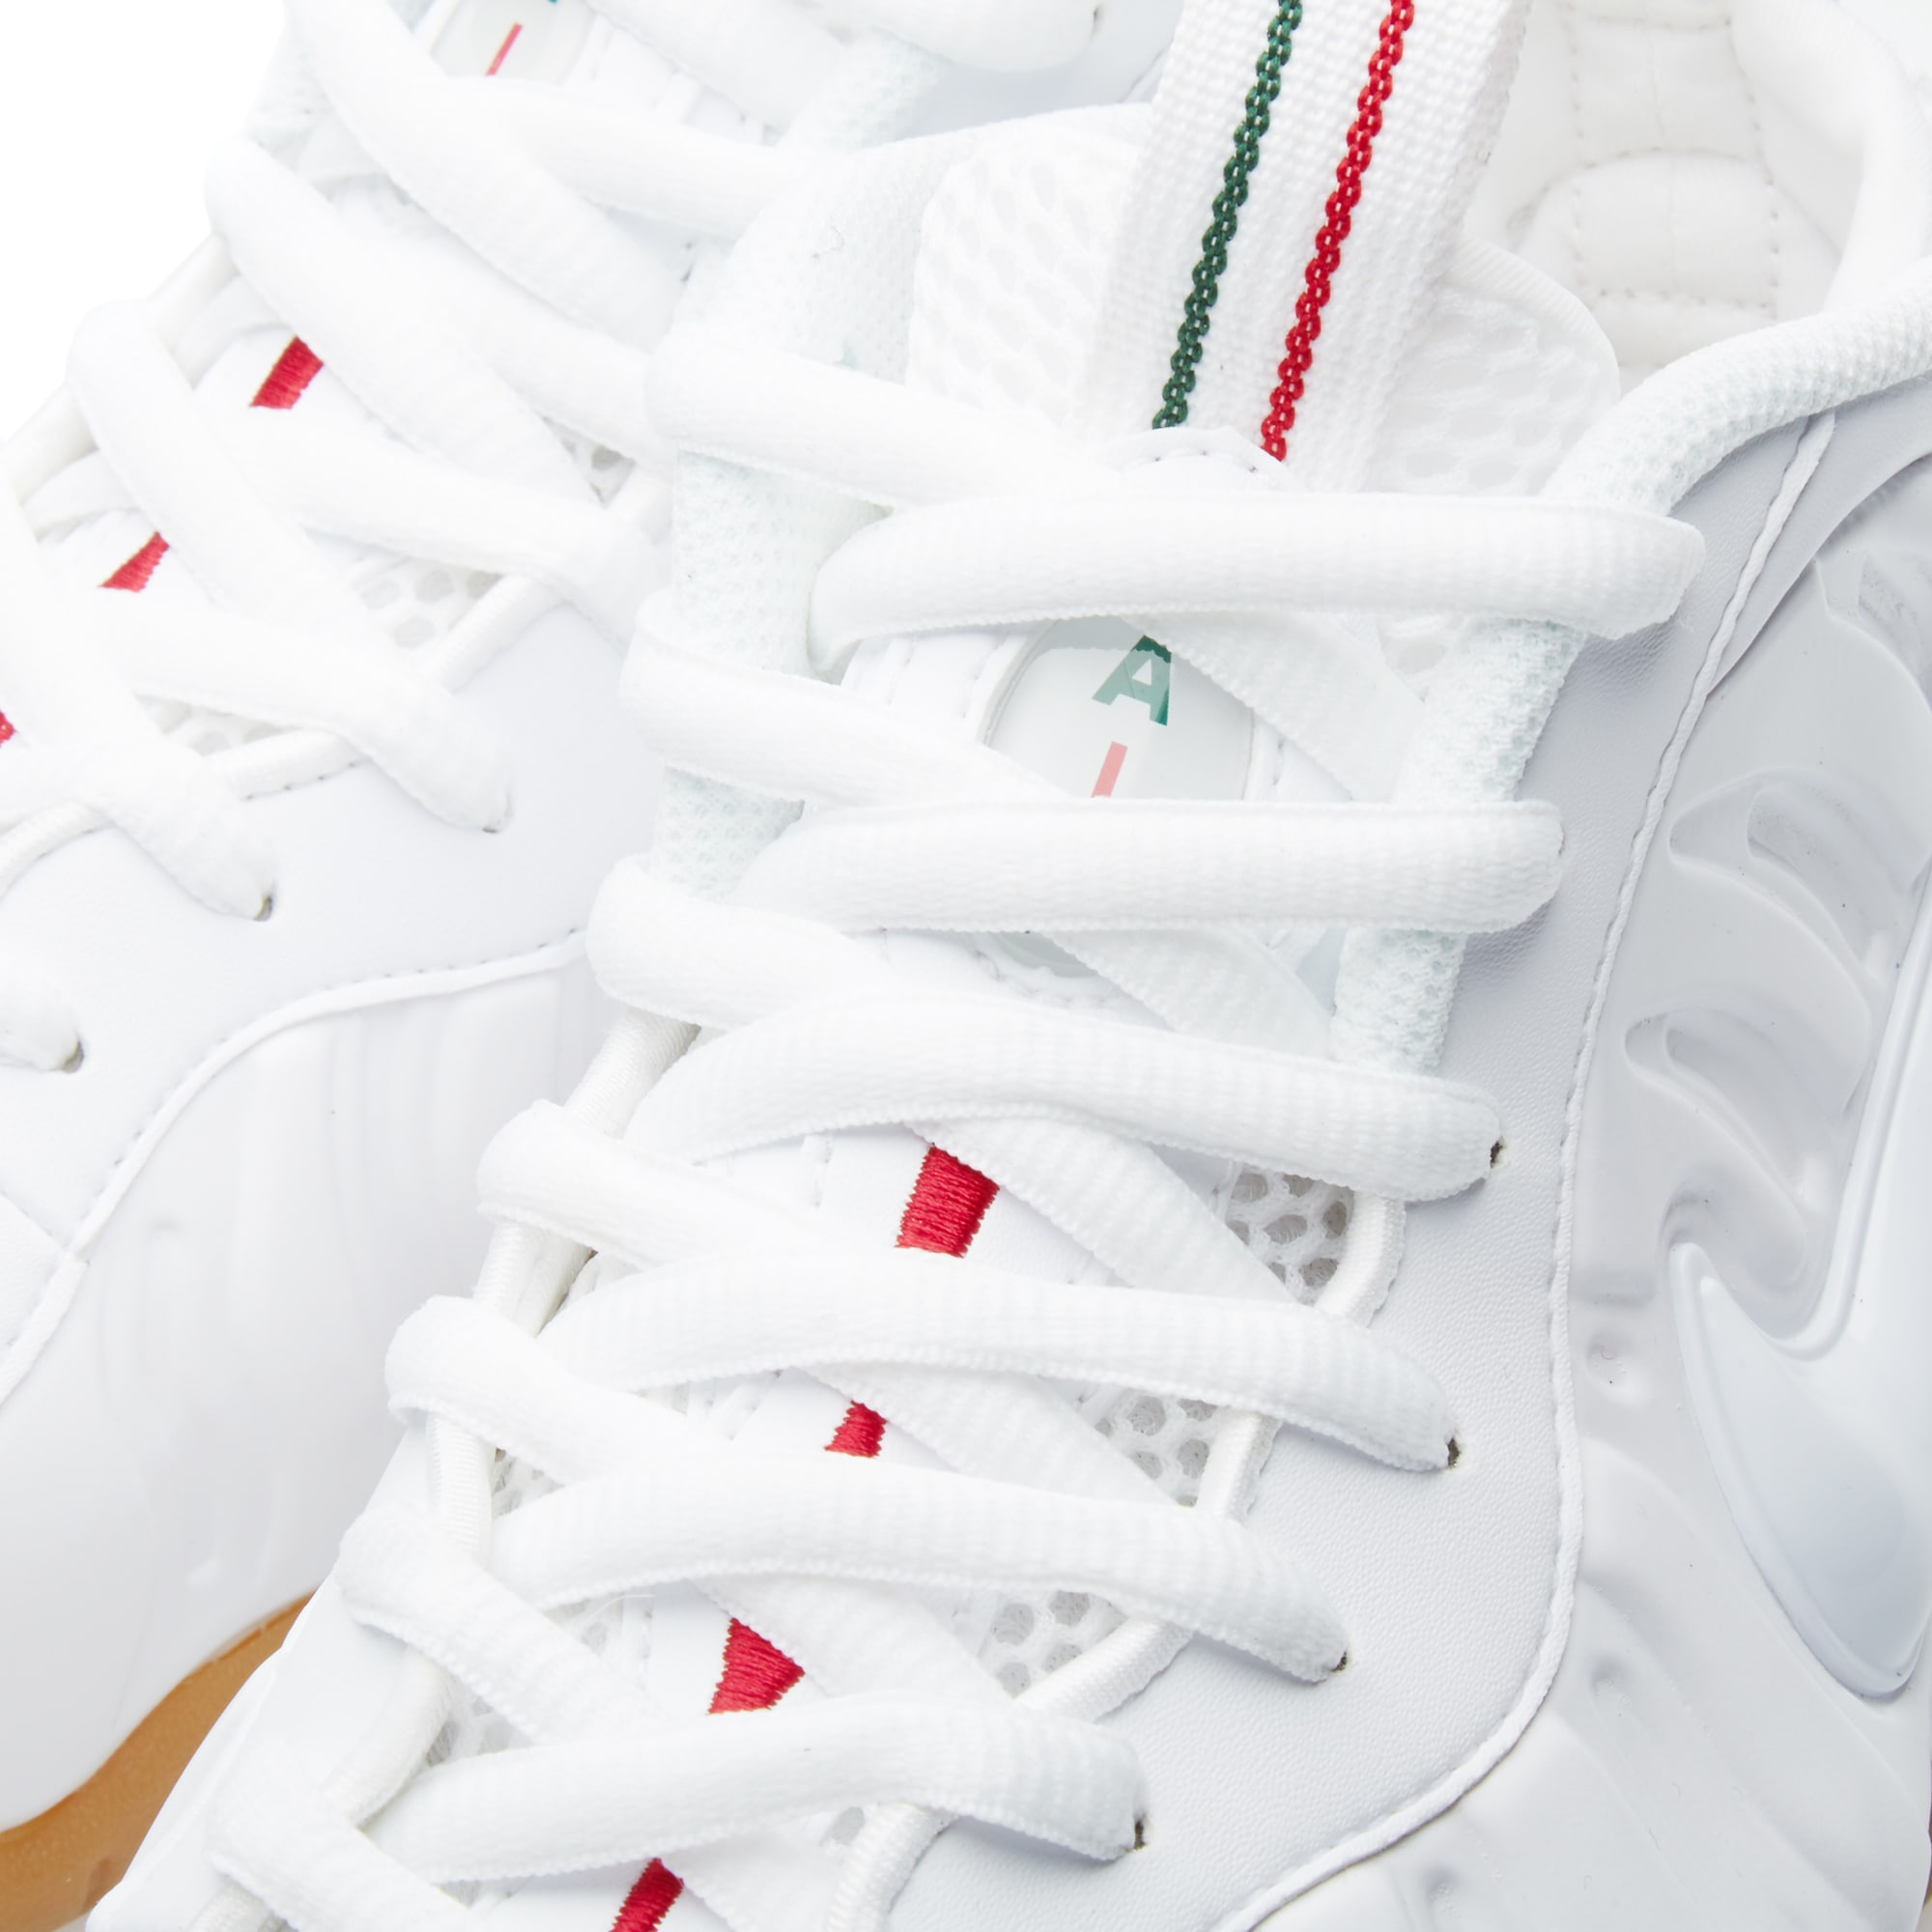 finest selection a36ac 82540 Nike Air Foamposite Pro White, Gym Red   Gorge Green   END.